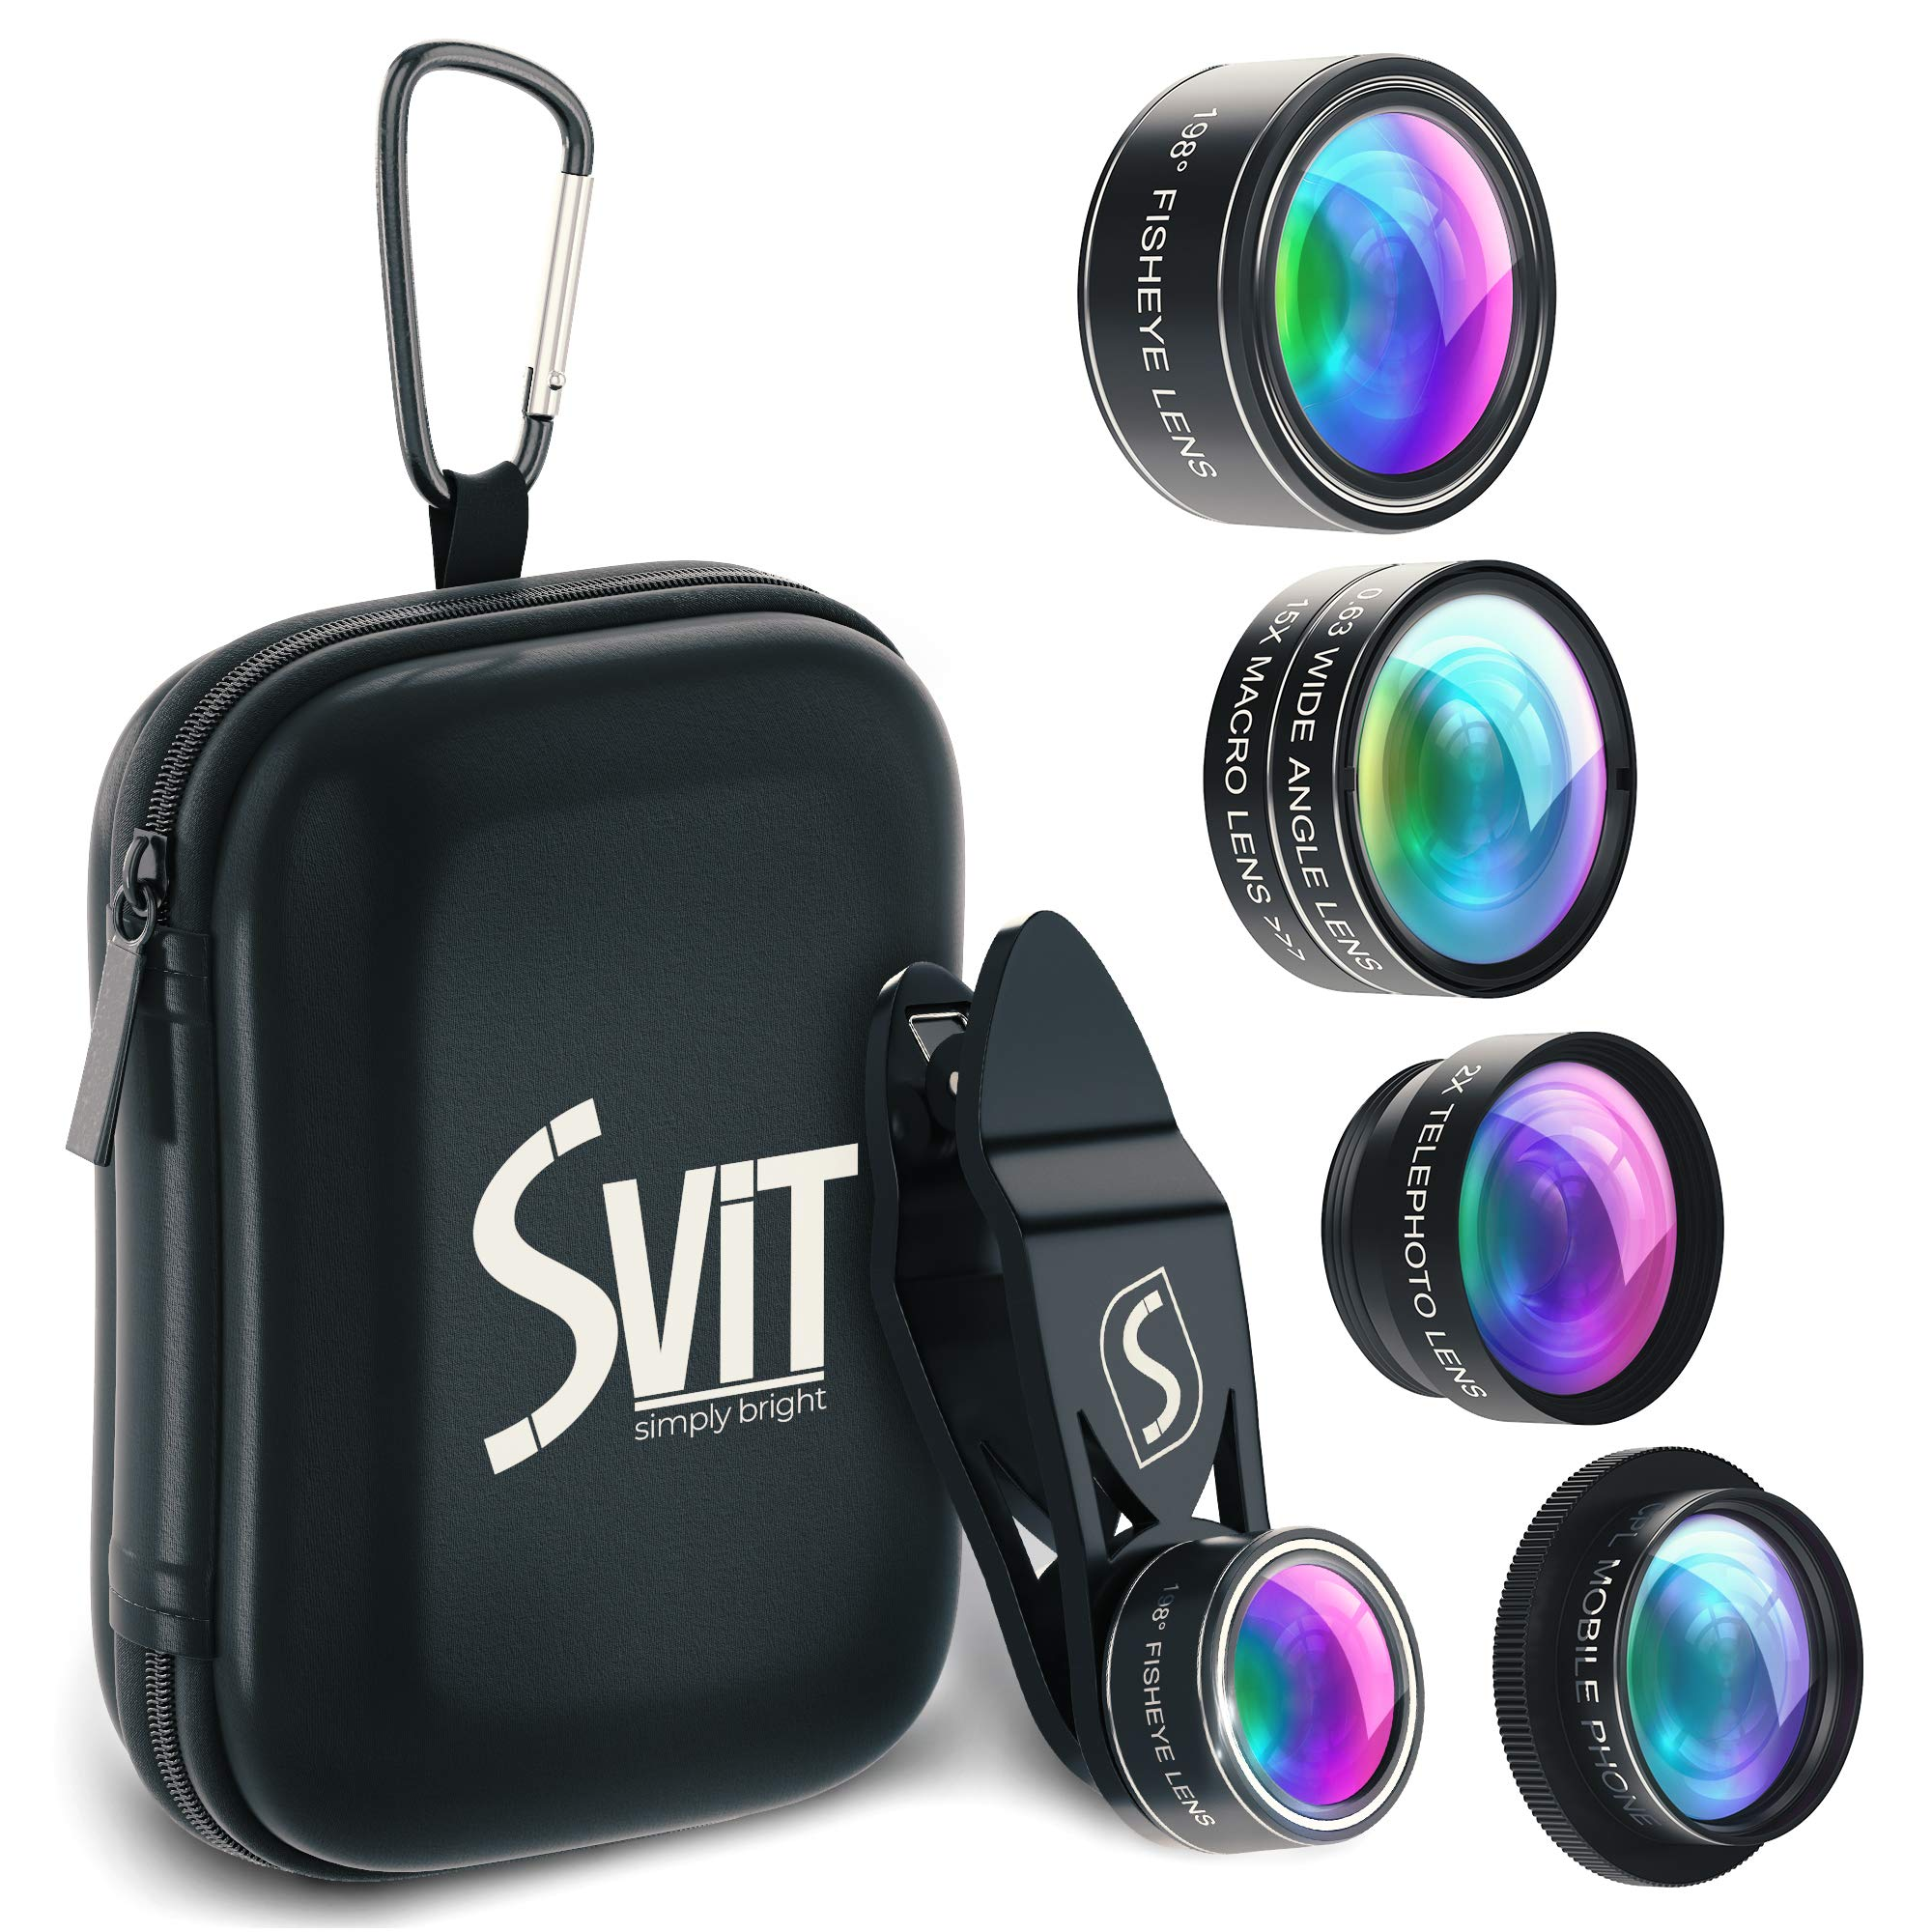 SVIT Phone Camera Lens Kit - 5 in 1 Optical Glass Mobile Attachment Set - 2X Zoom Telephoto, 198 Fisheye, 0.63X Wide Angle, 15X Macro, CPL Filter and Universal Clip Adapter for Cell Phones and Tablets by SVIT